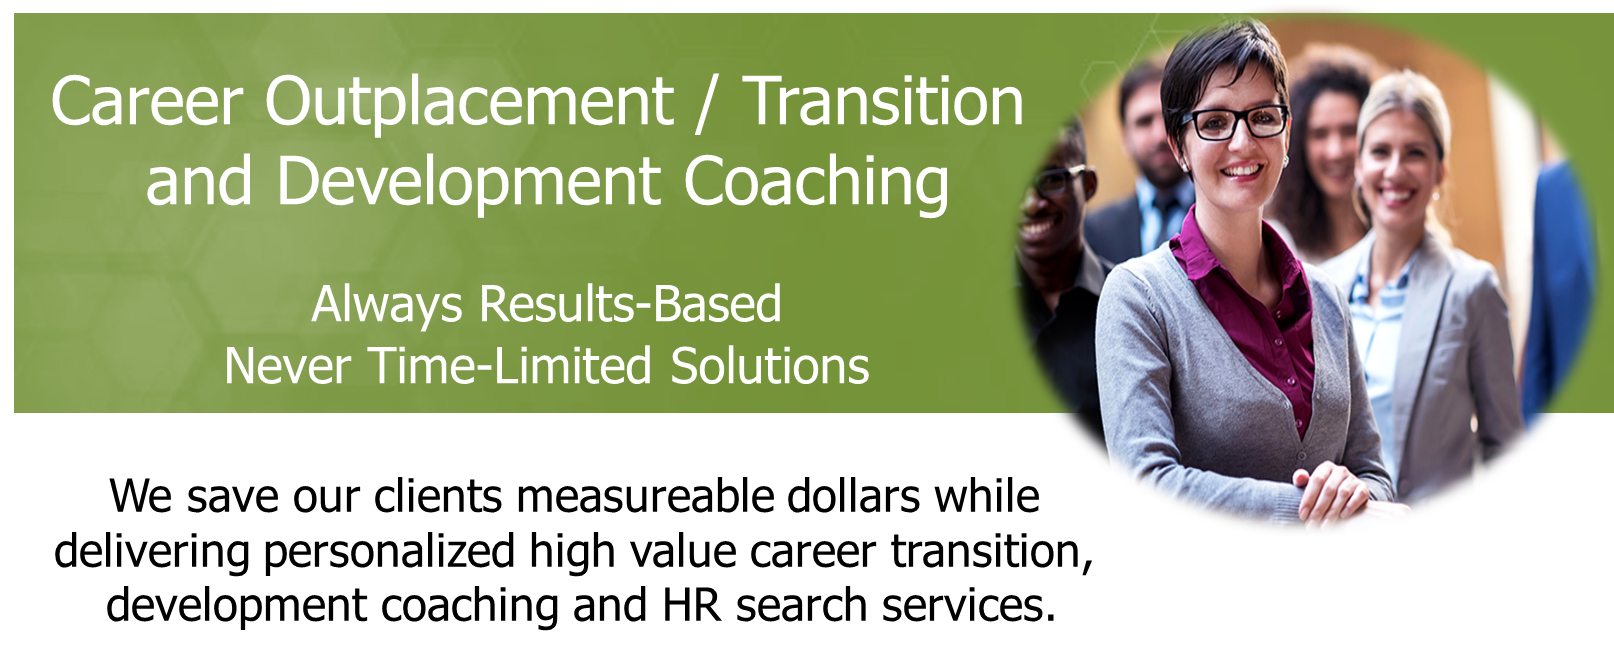 Career Outplacement/ Transition and Development Coaching